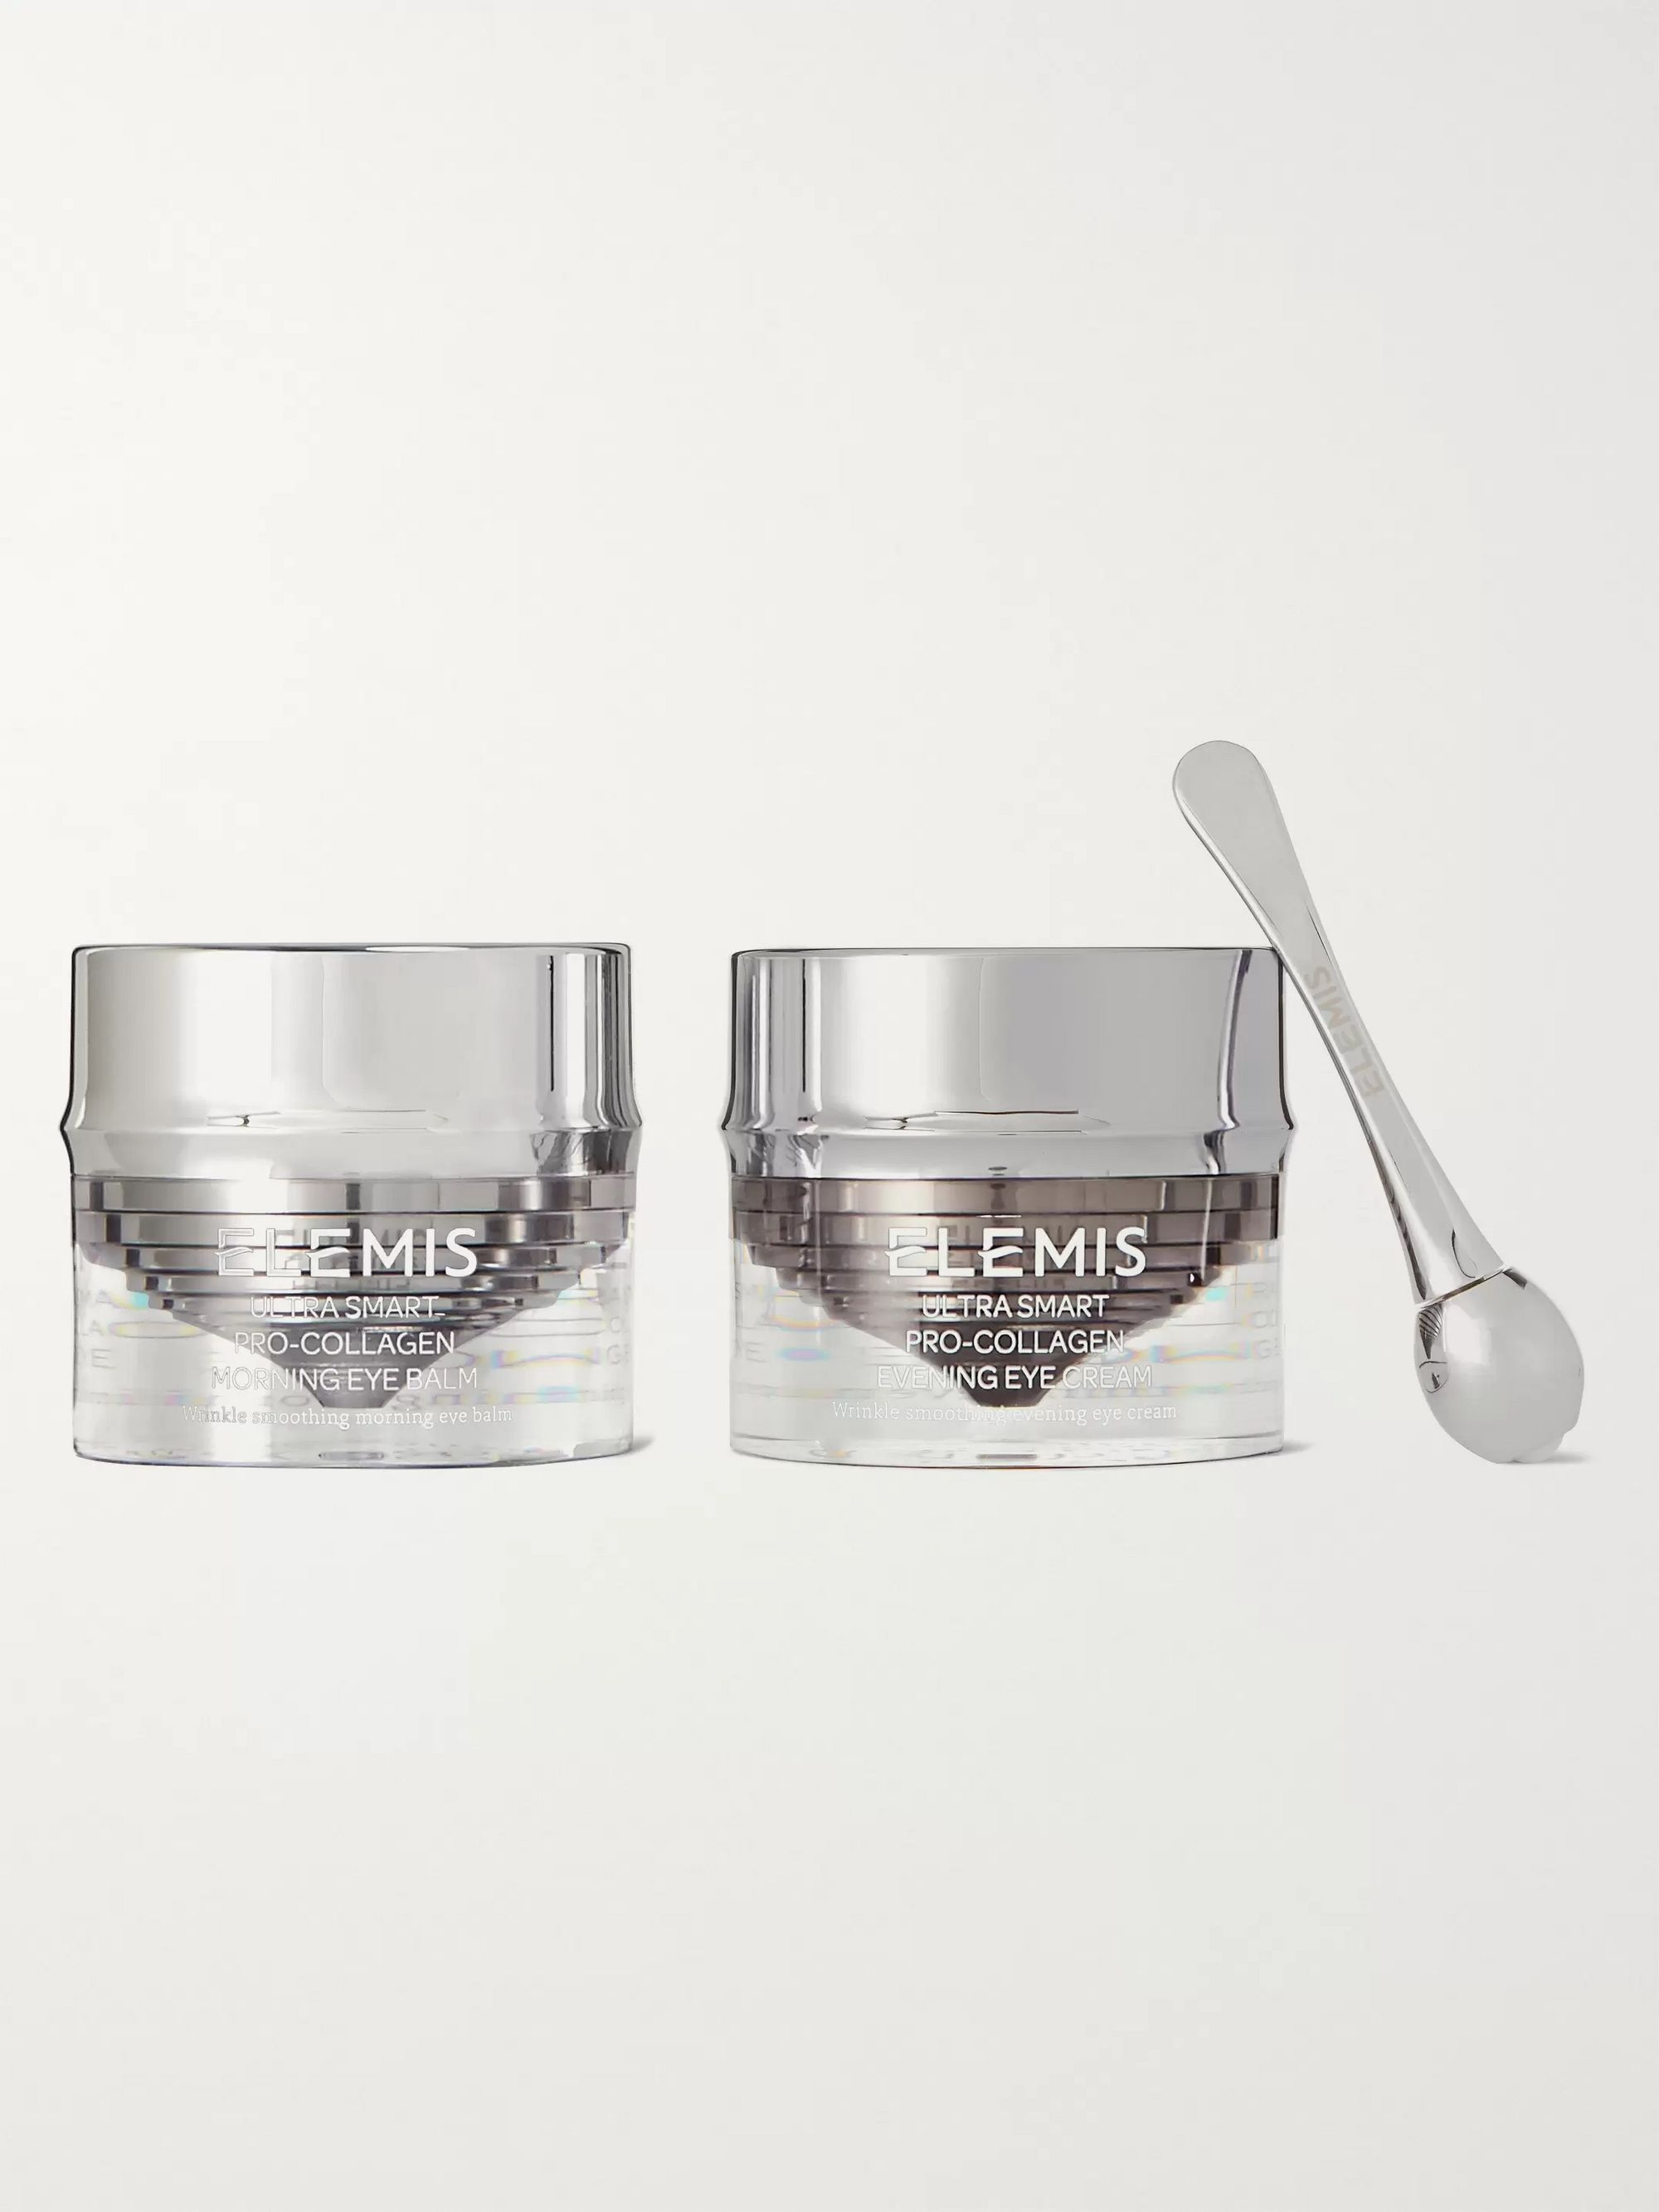 Elemis Ultra Smart Pro-Collagen Eye Treatment Duo, 2 x 10ml